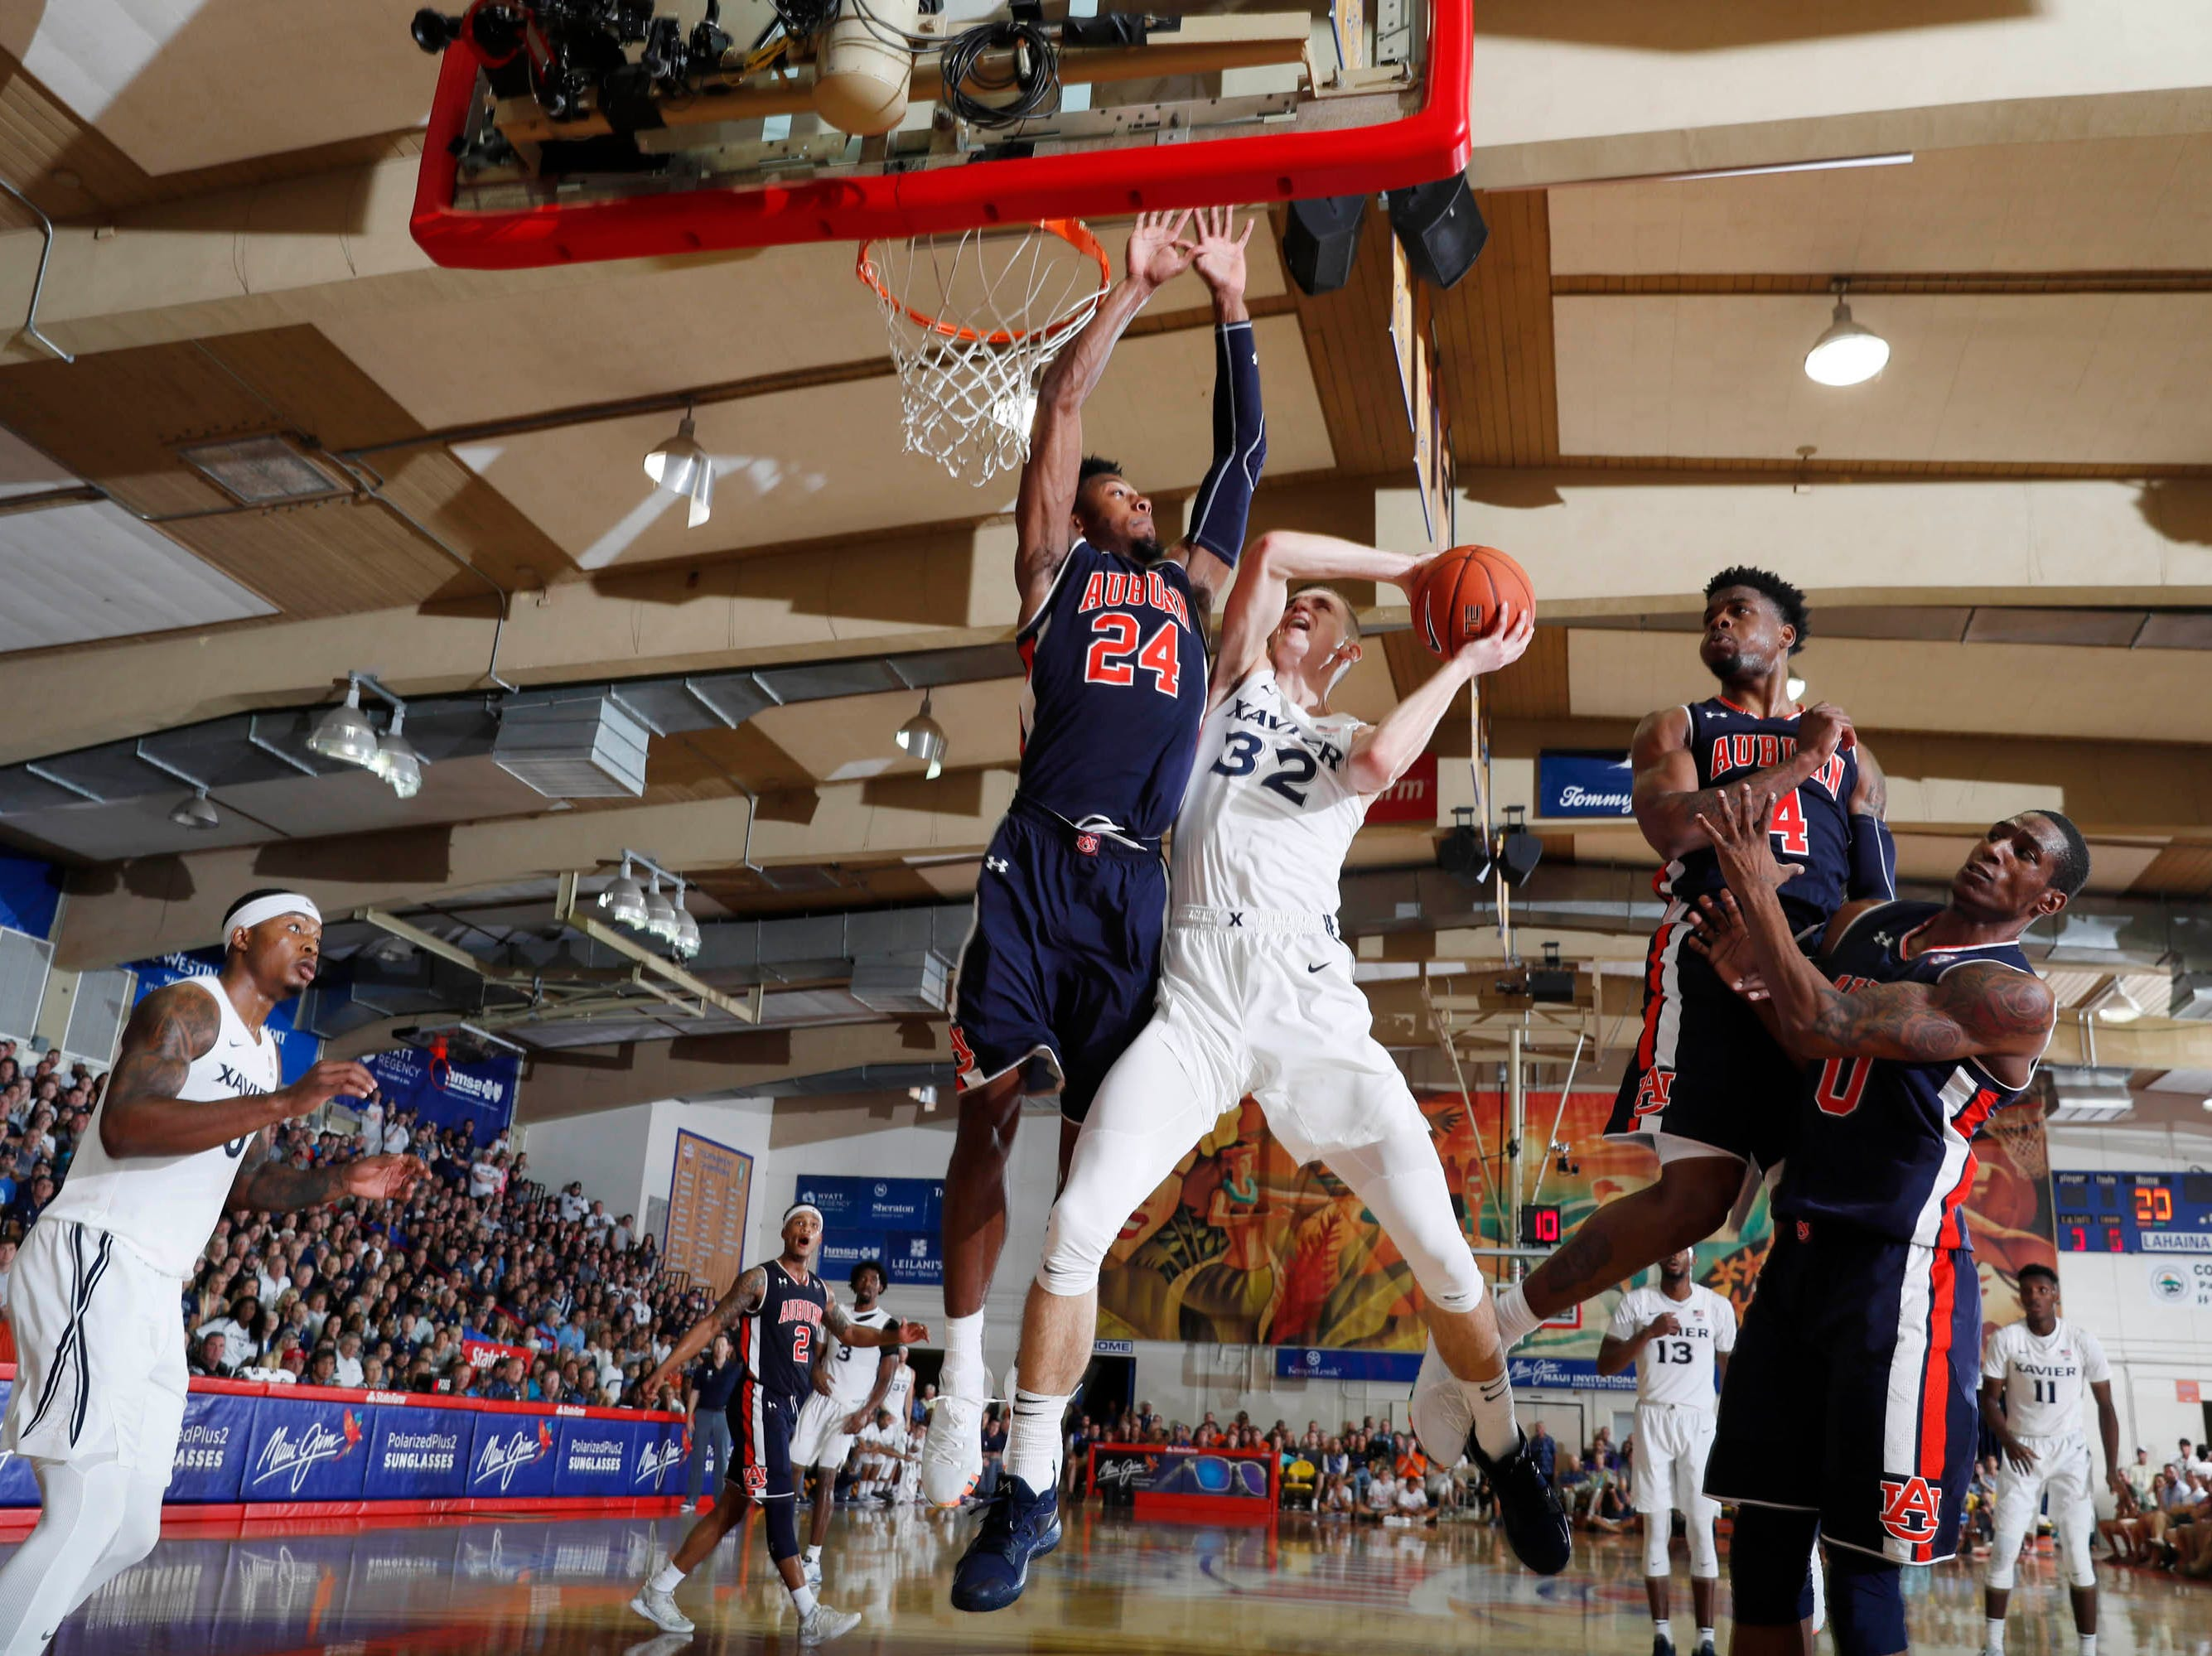 Nov 19, 2018; Lahaina, HI, USA; Xavier Musketeers forward Ryan Welage (32) takes a shot against  Auburn Tigers forward Anfernee McLemore (24) in the first half during the first round games of the Maui Jim Maui Invitational at Lahaina Civic Center. Mandatory Credit: Brian Spurlock-USA TODAY Sports